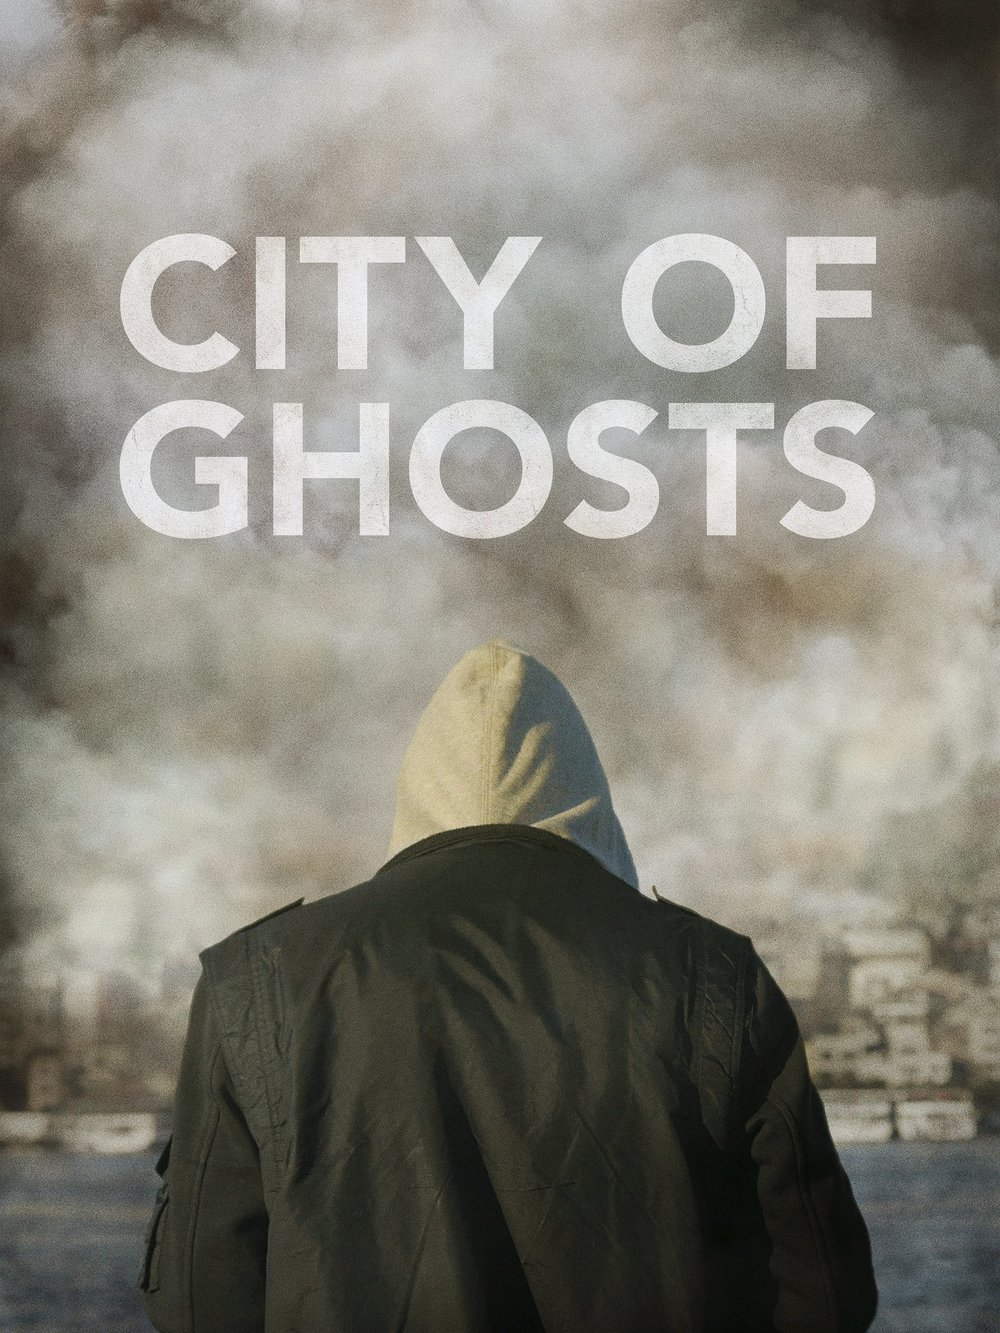 city of ghosts.jpg